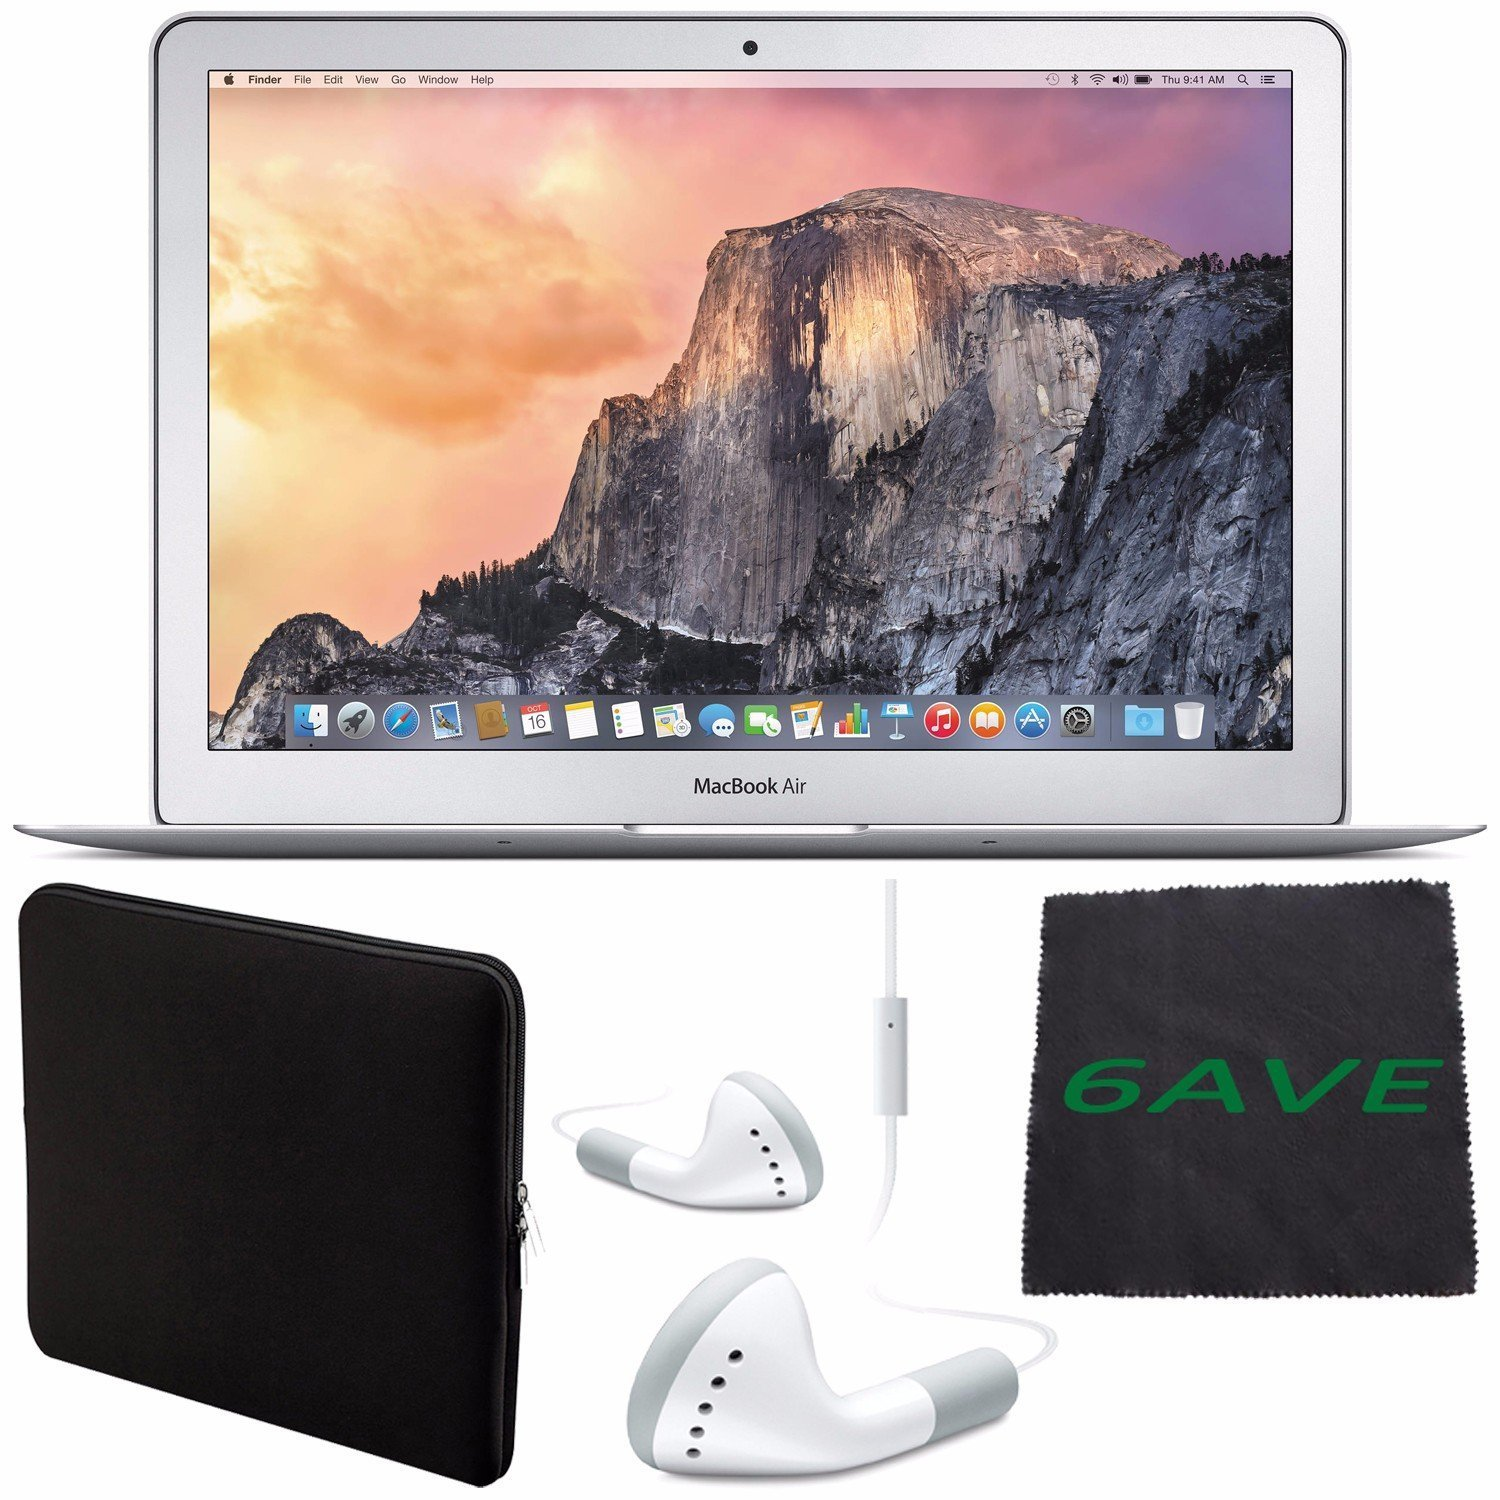 """6Ave Apple 13.3"""" MacBook Air Laptop Computer 256GB #MMGG2LL/A + White Wired Earbuds Headphones + Padded Case For Macbook + Fibercloth Bundle"""